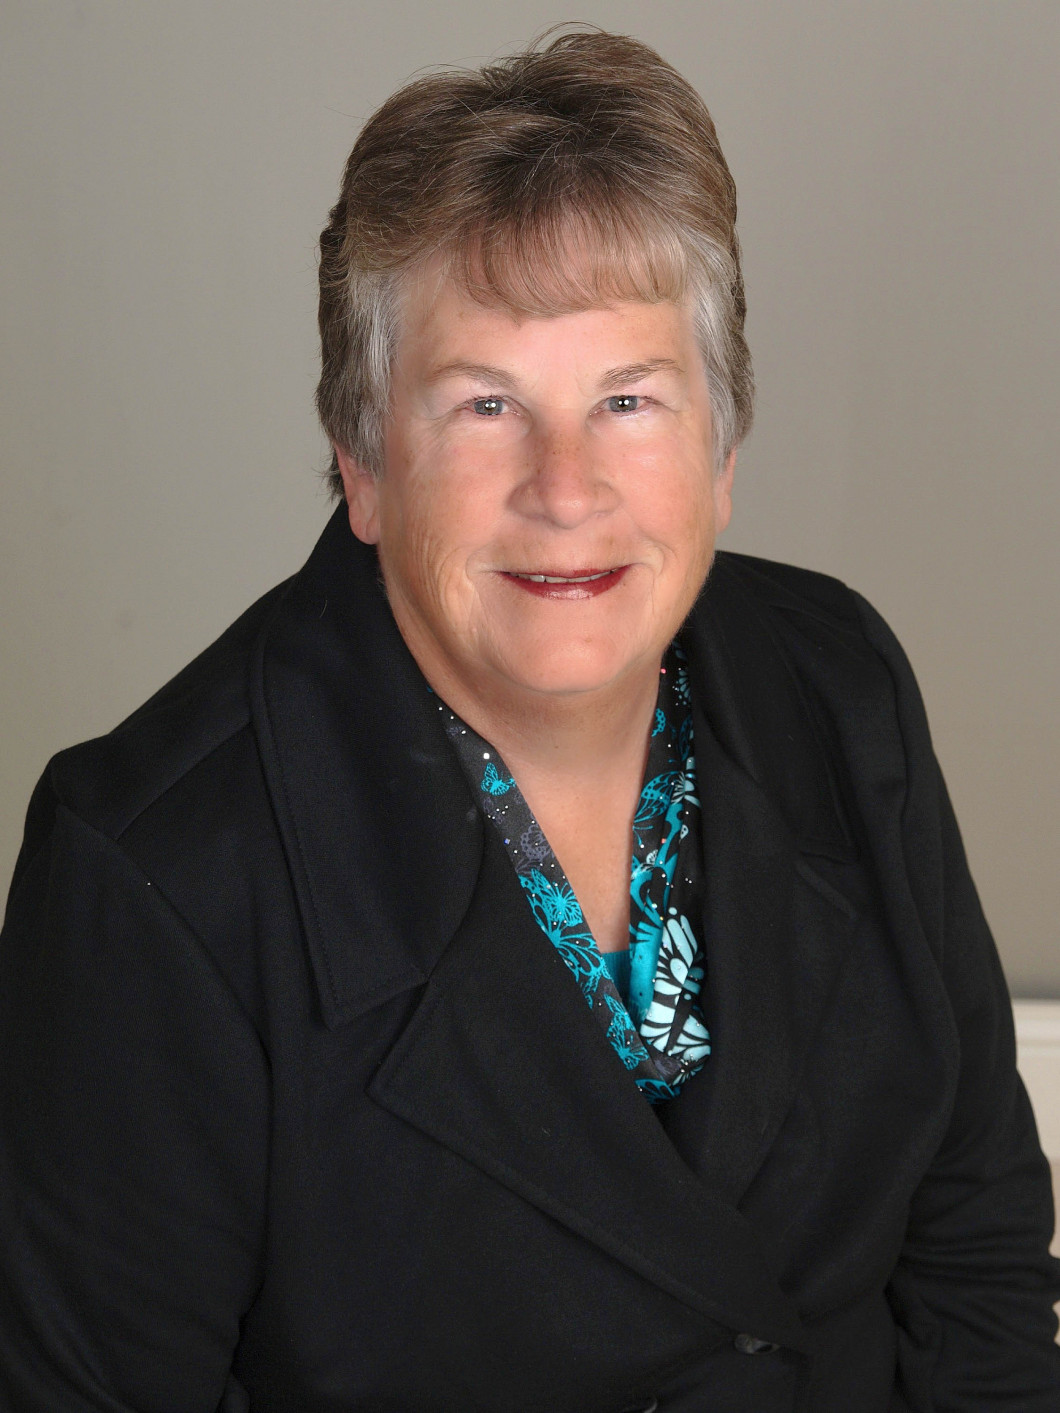 PAT HOWEY, PARALEGAL